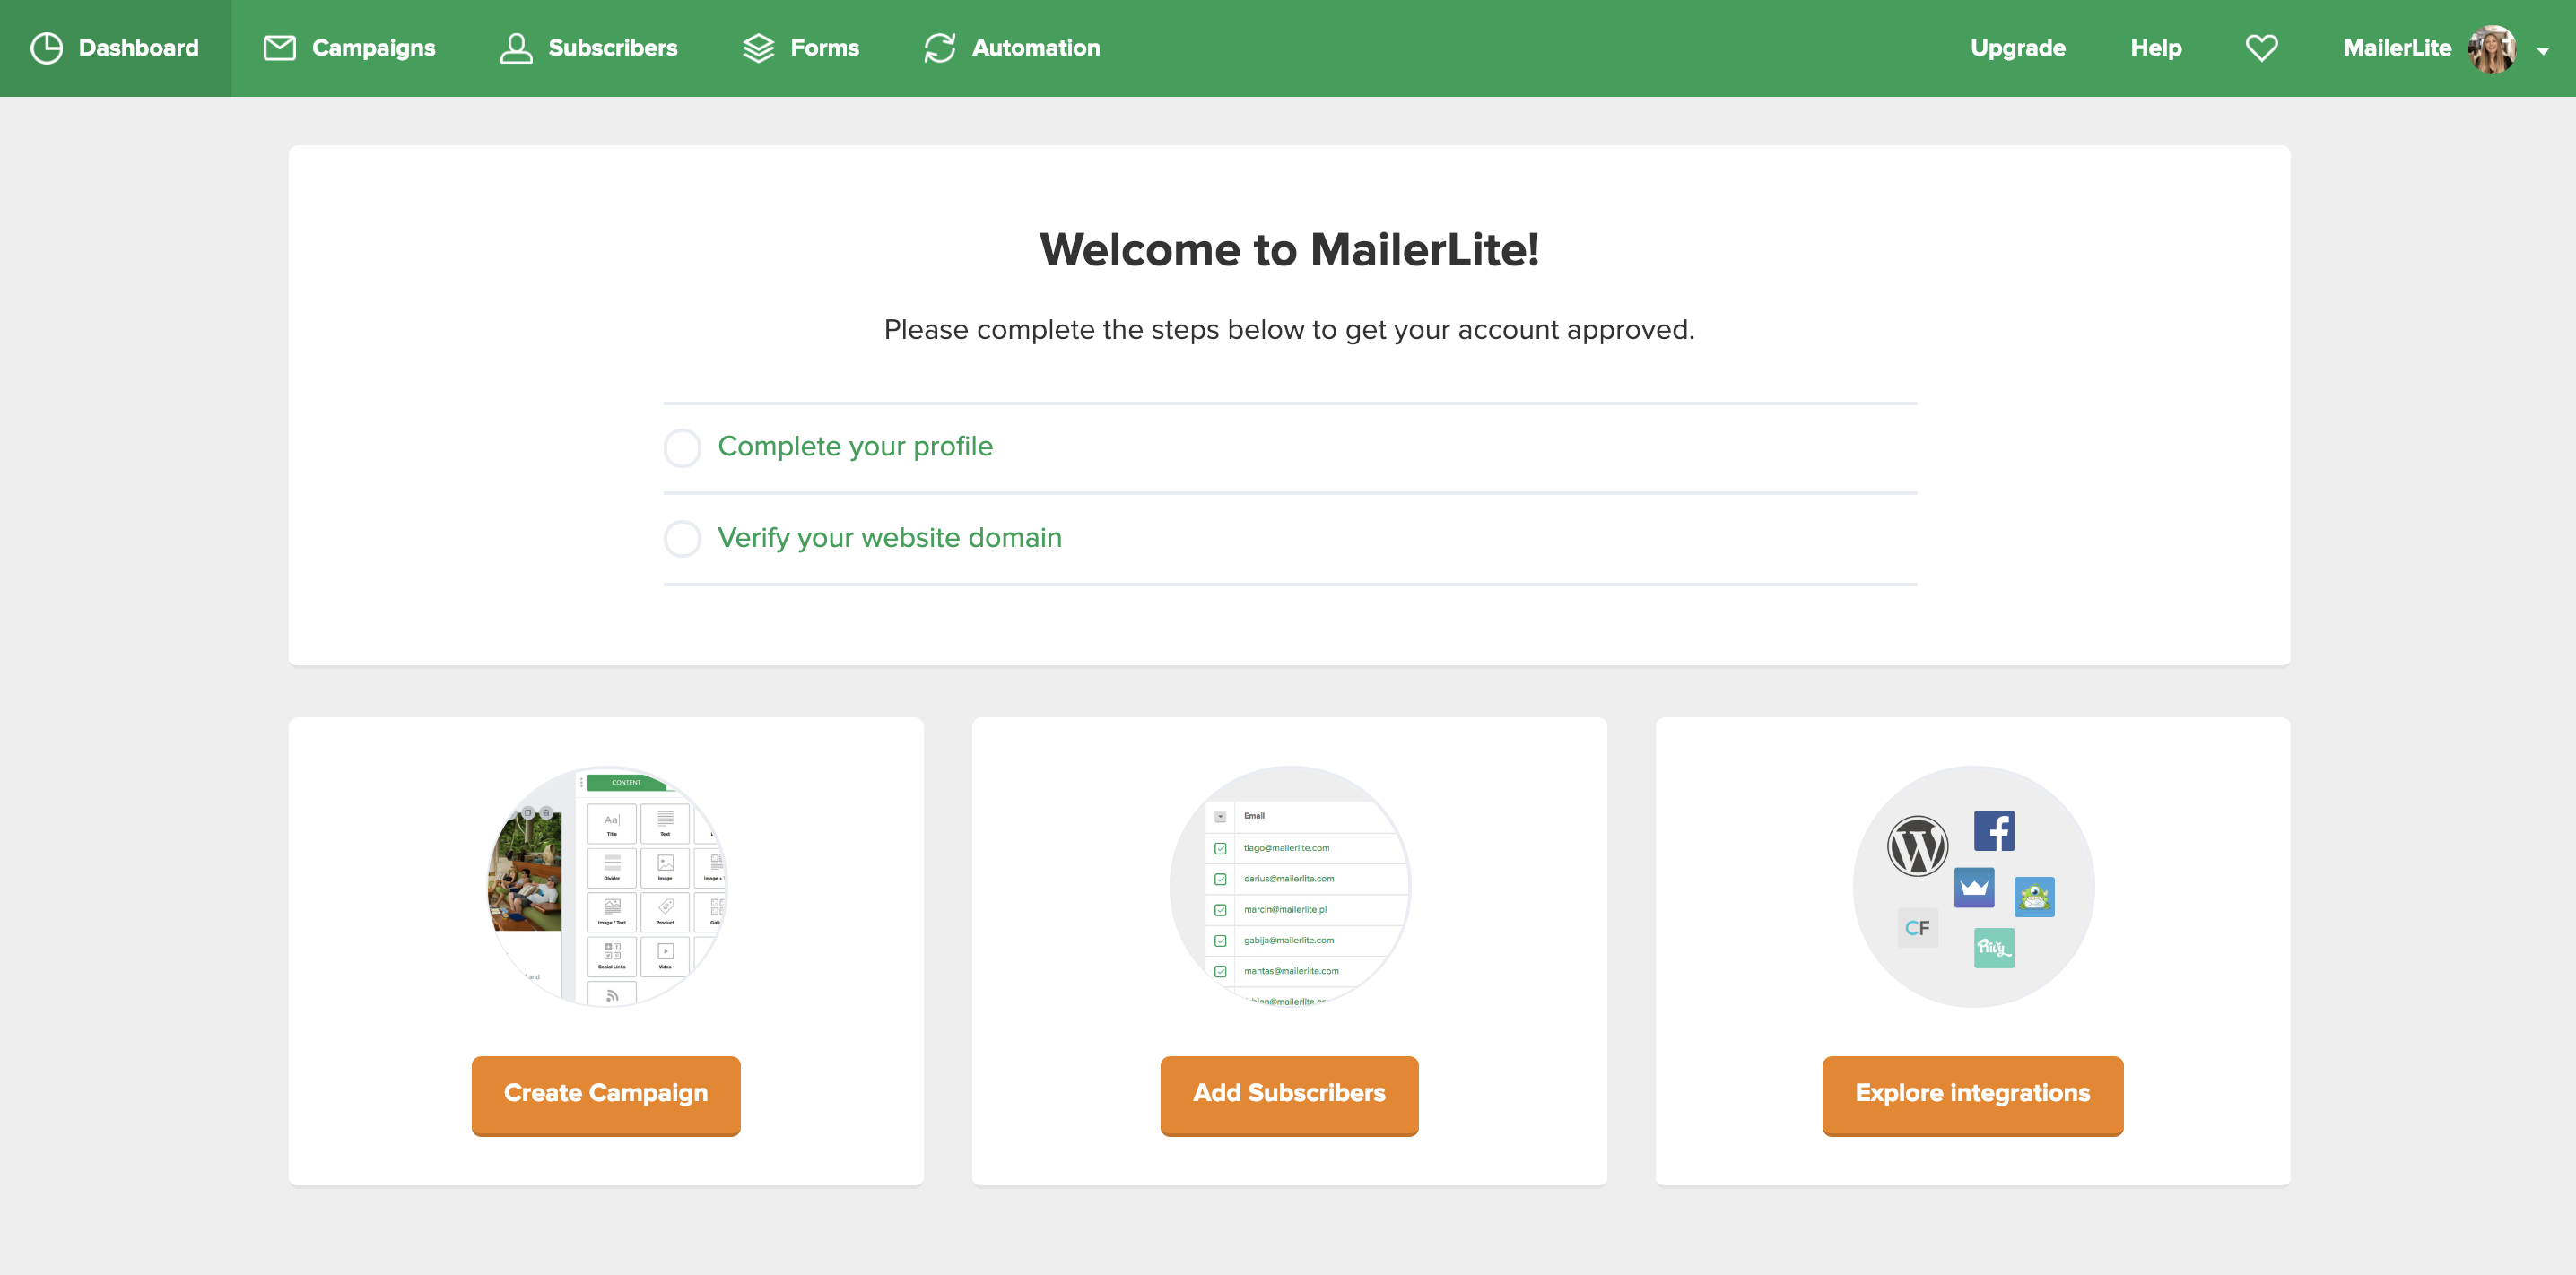 MailerLite - Getting started with MailerLite